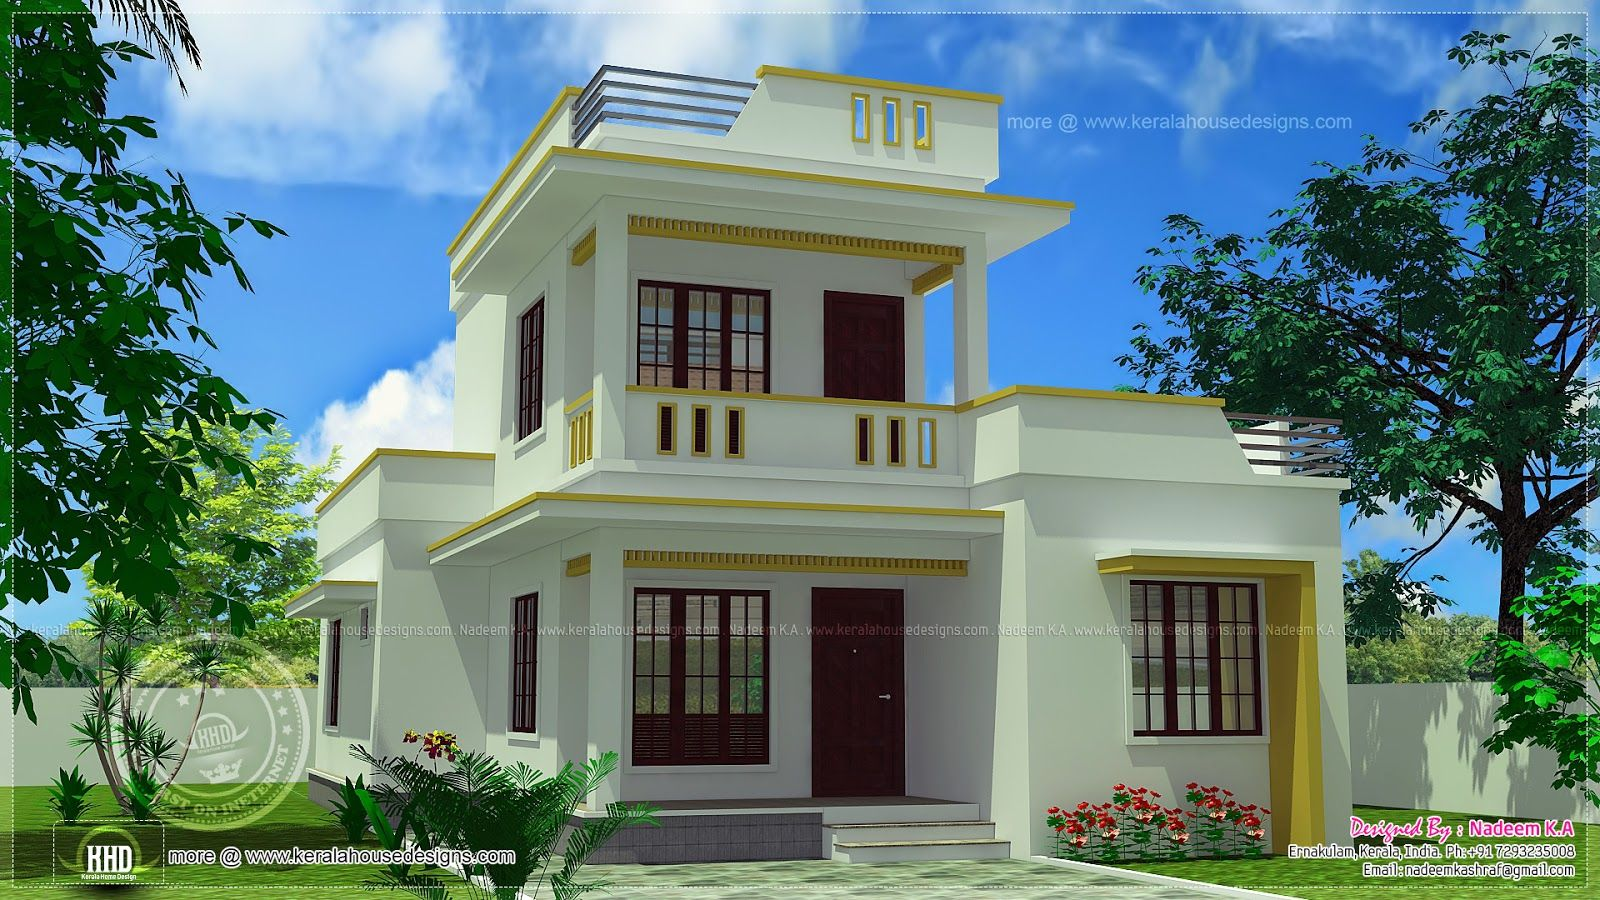 Roof home design feet kerala plans simple modern house for Simple kerala home designs